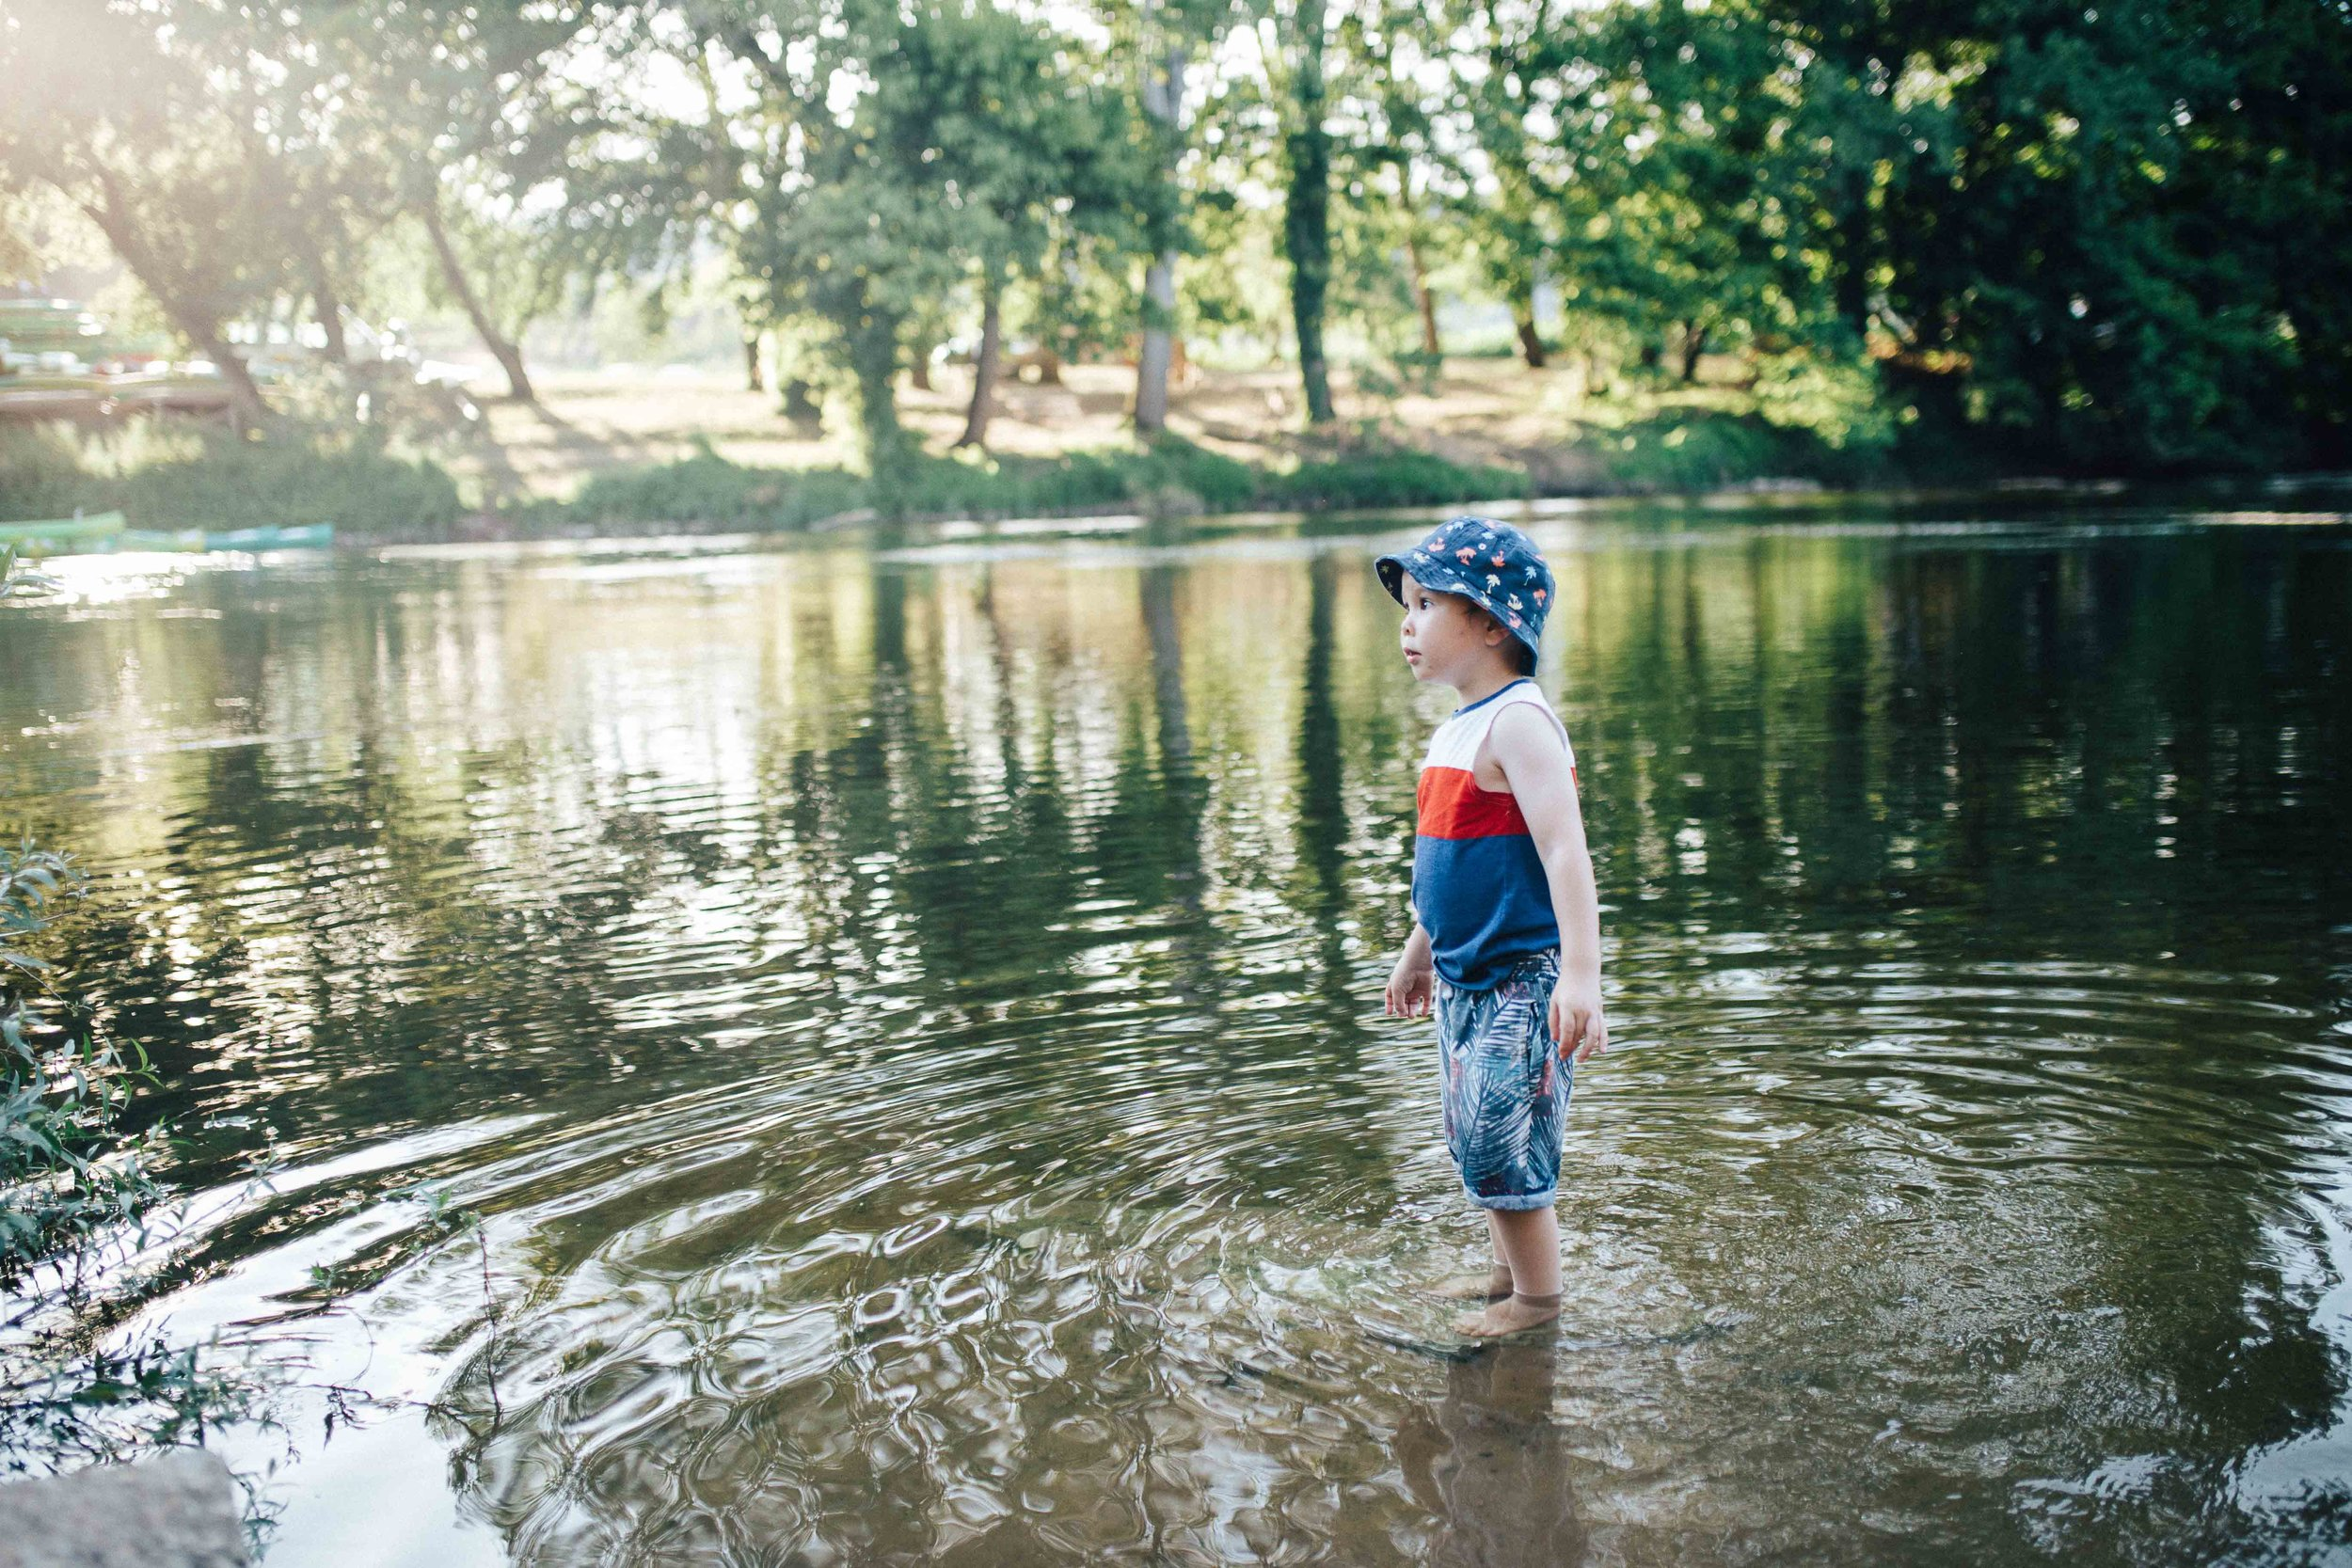 Boy standing in a river